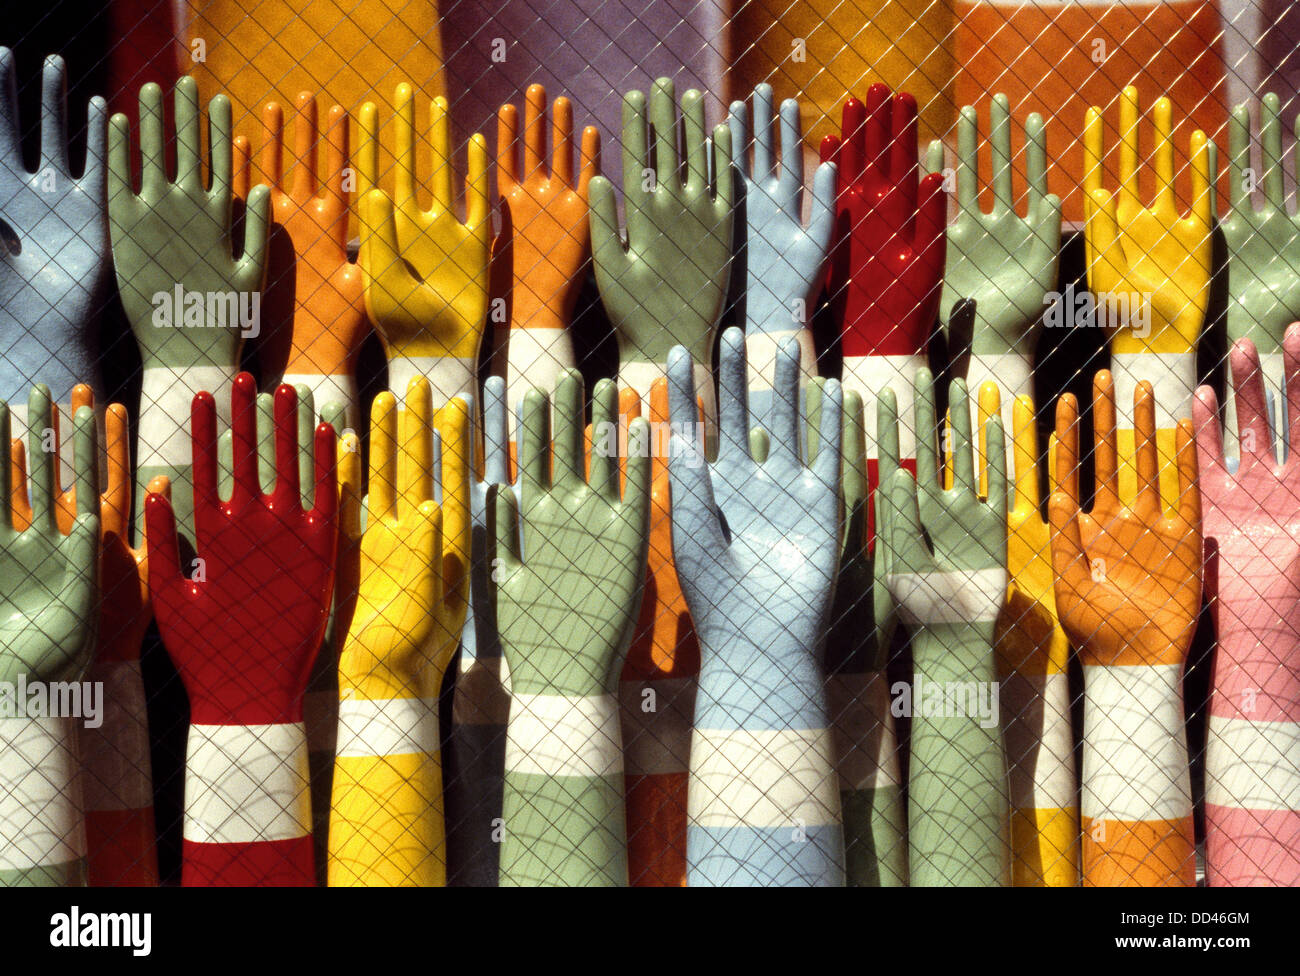 Colorful mannequin hands in a window - Stock Image